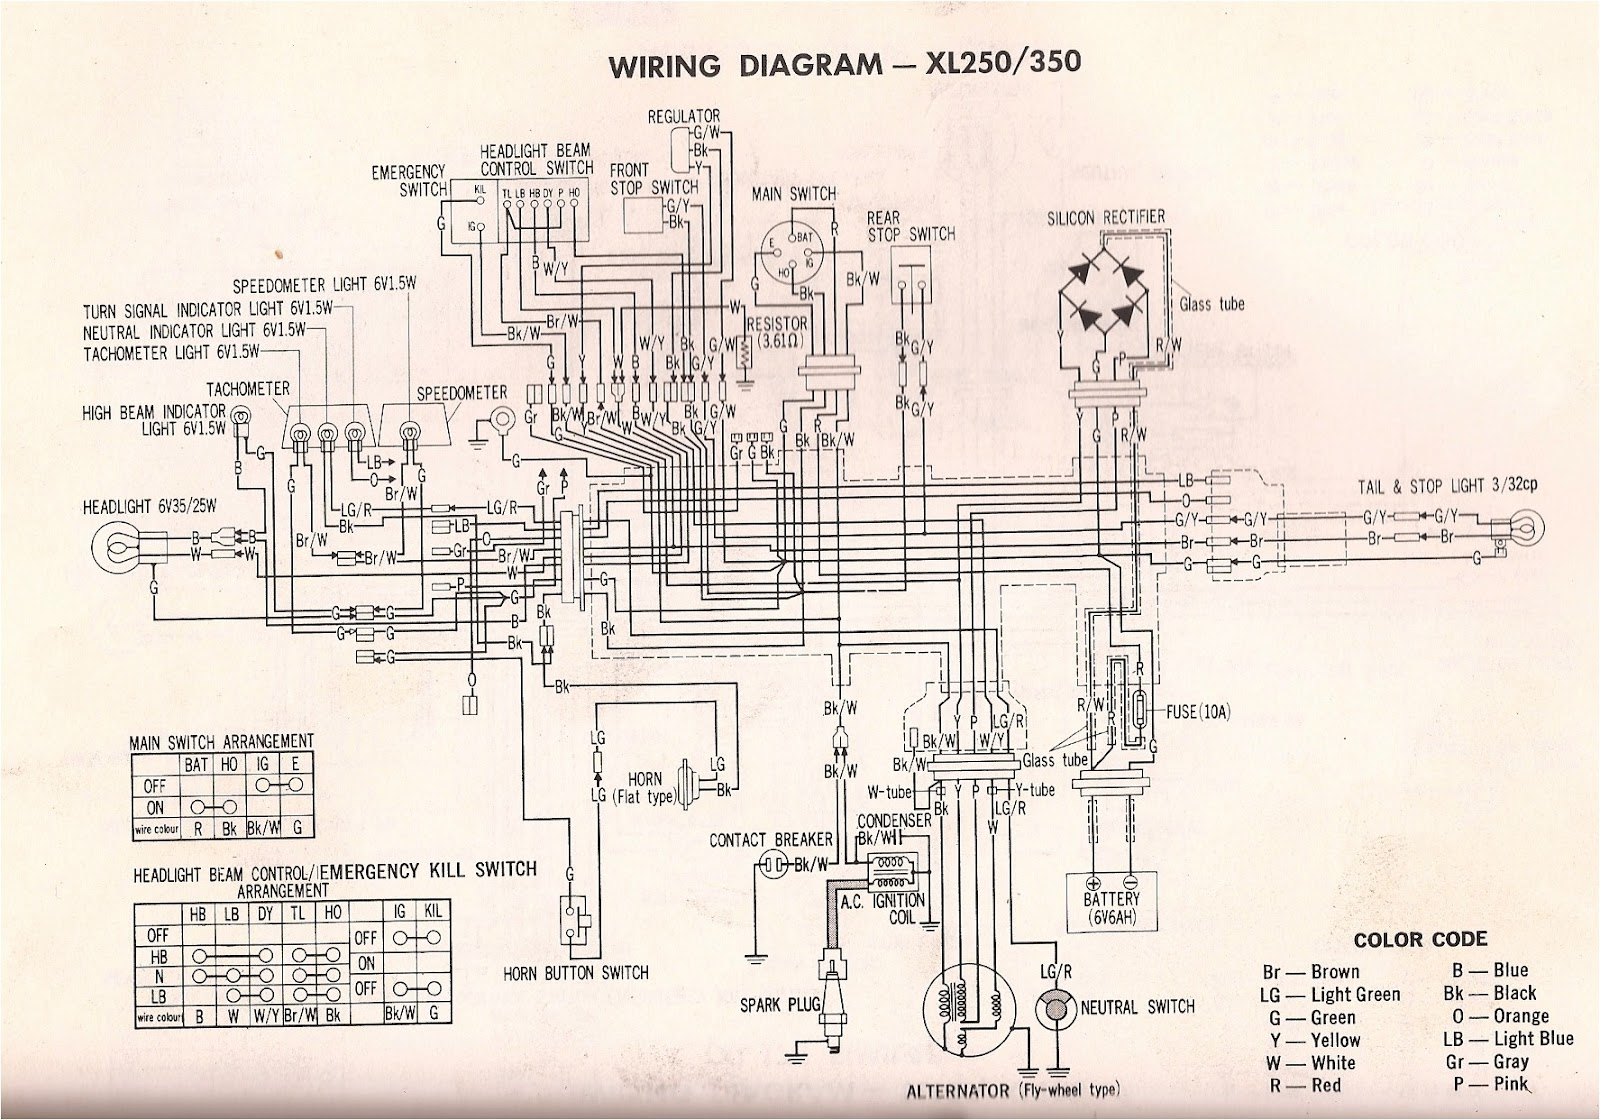 XL350+Wiring+diagram+S r4l xl350 wiring diagram (and xl250) 1975 honda cb360 wiring diagram at couponss.co